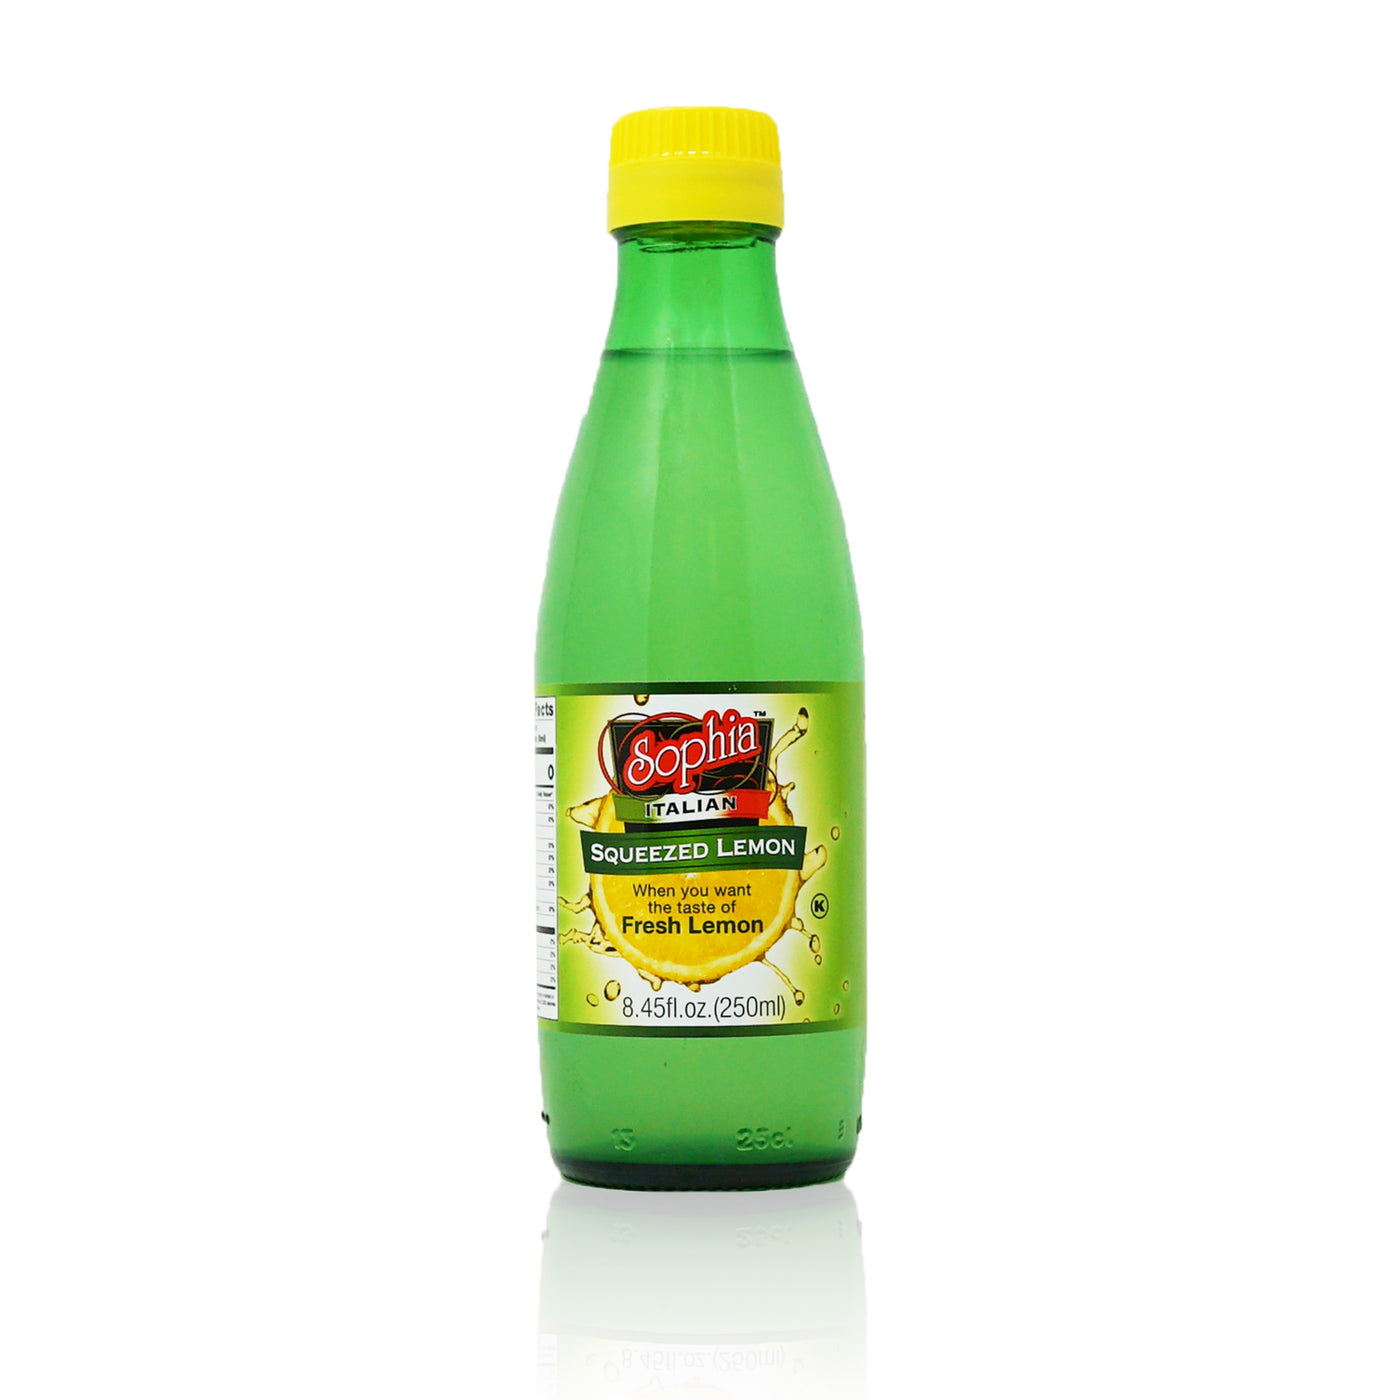 Sophia Lemon Juice Condiment from Sicily 250mL